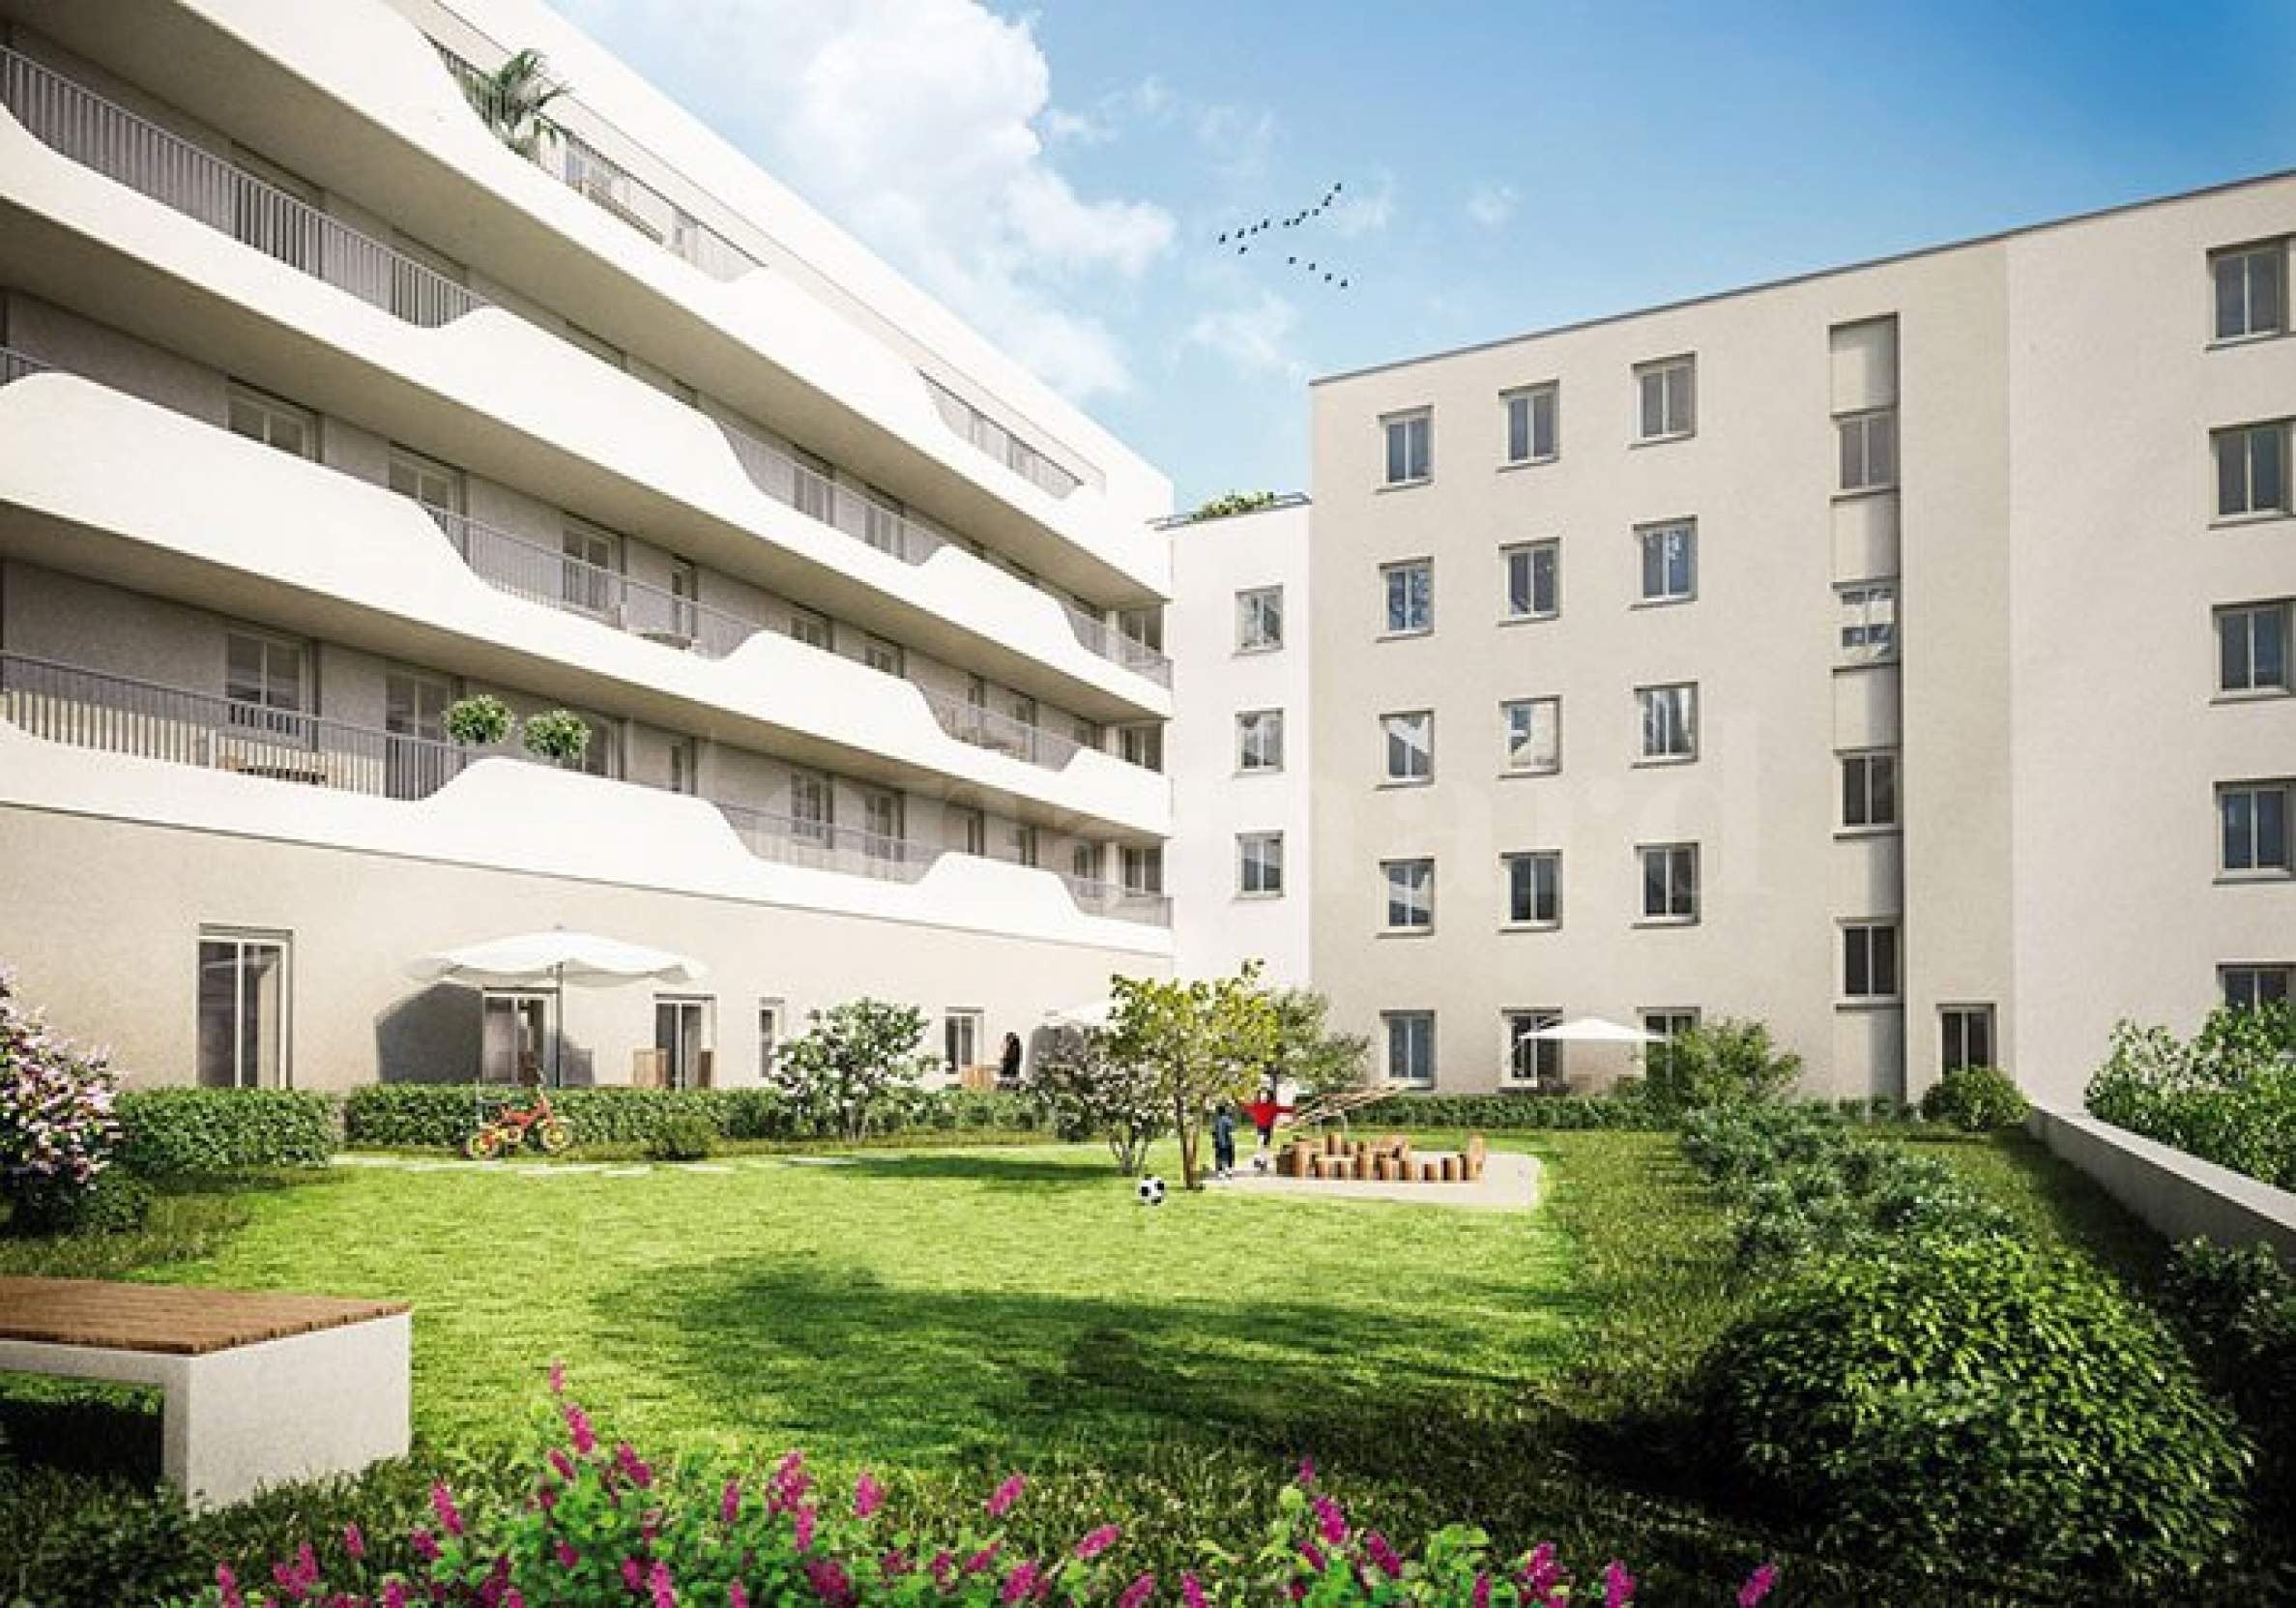 Exclusive apartments in 3 buildings in Berlin's Green Southwest2 - Stonehard